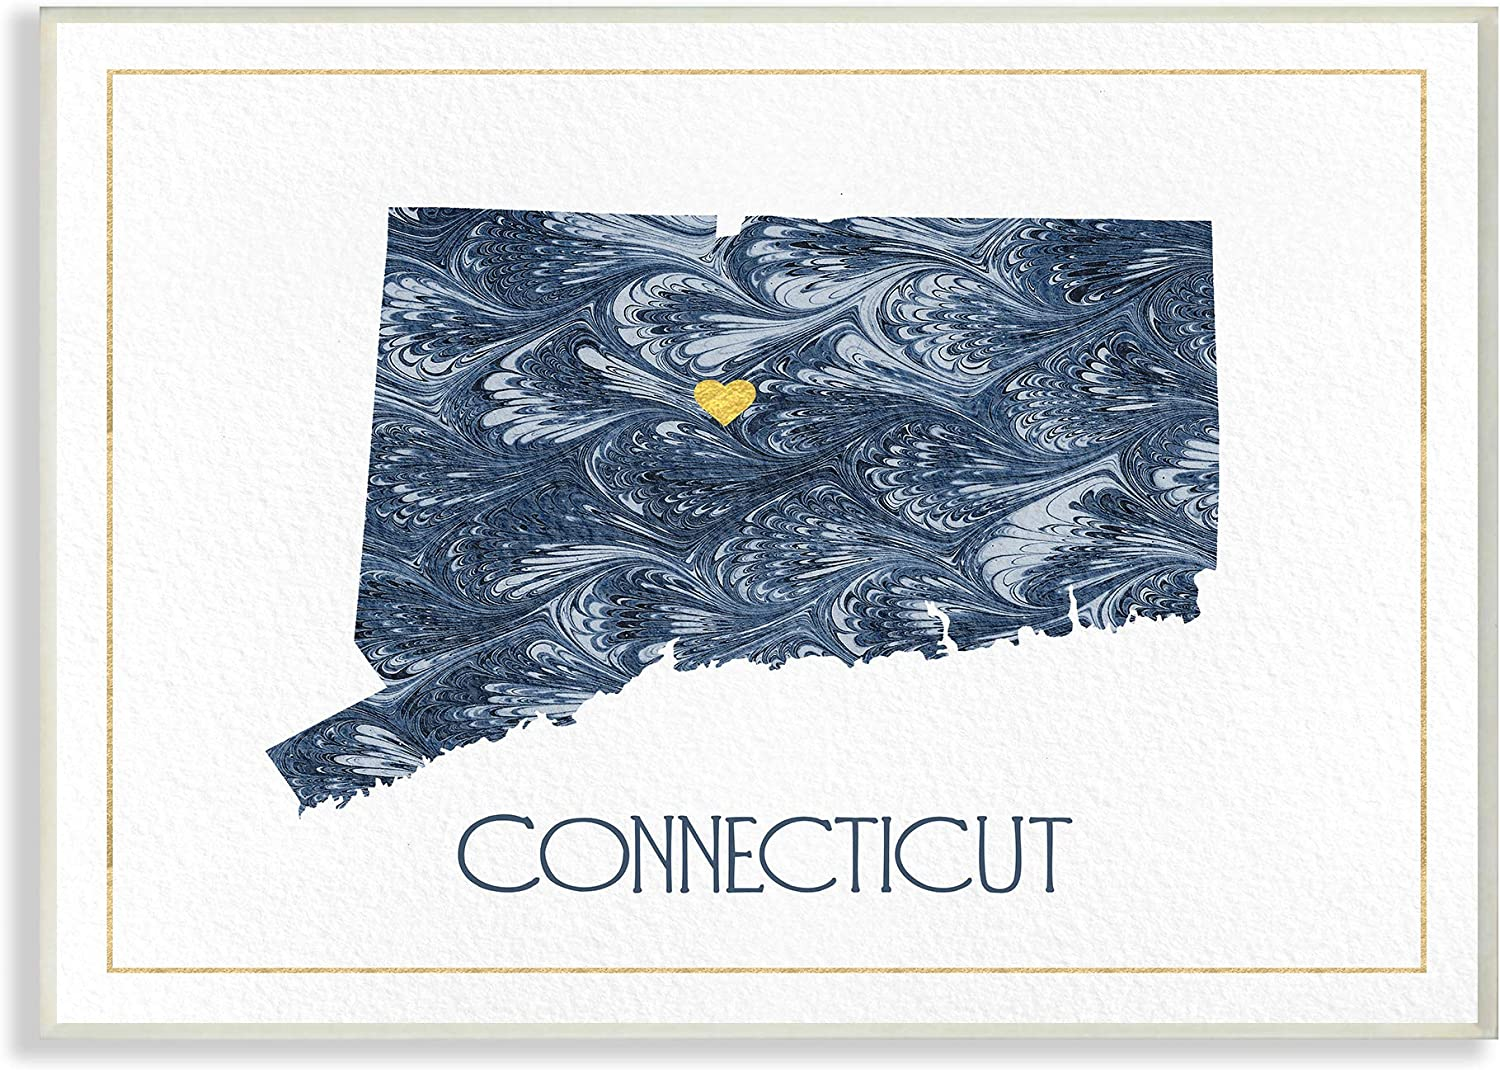 The Stupell Home Decor Connecticut Minimal bluee Marbled Paper Silhouette Wall Plaque Art, 13 X 19, Multi-color